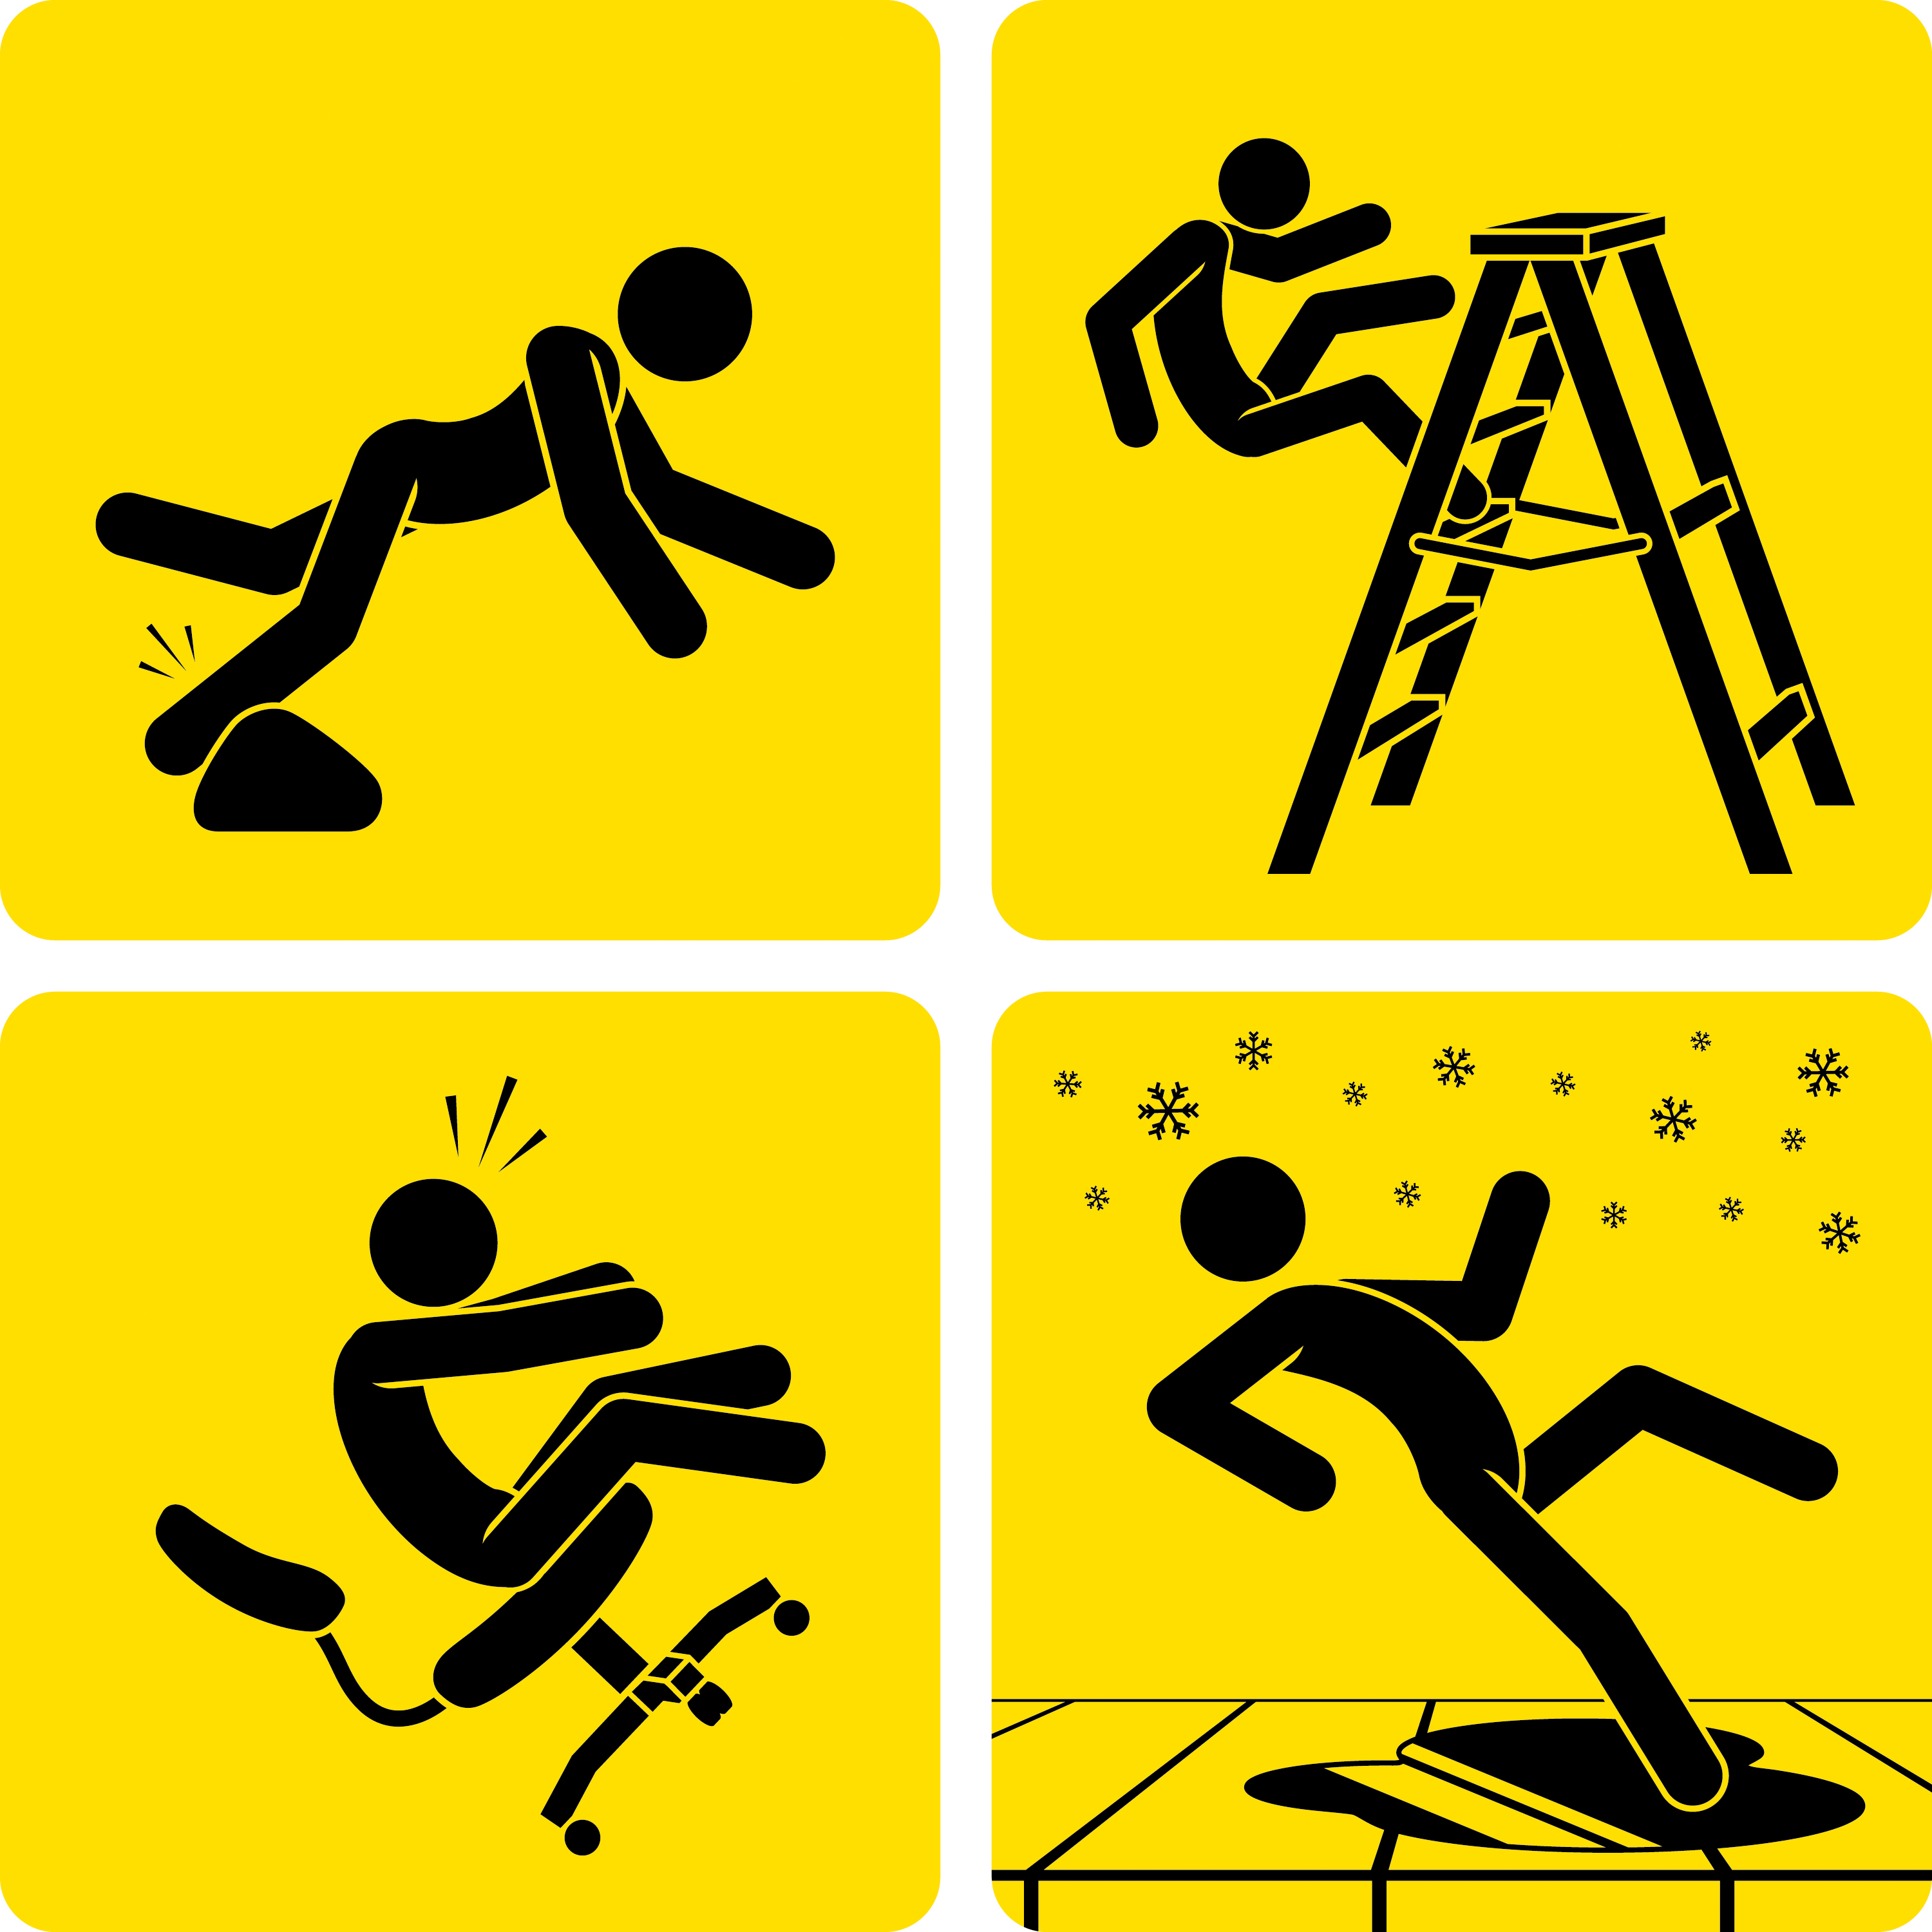 Injury clipart work injury. Most common personal claims